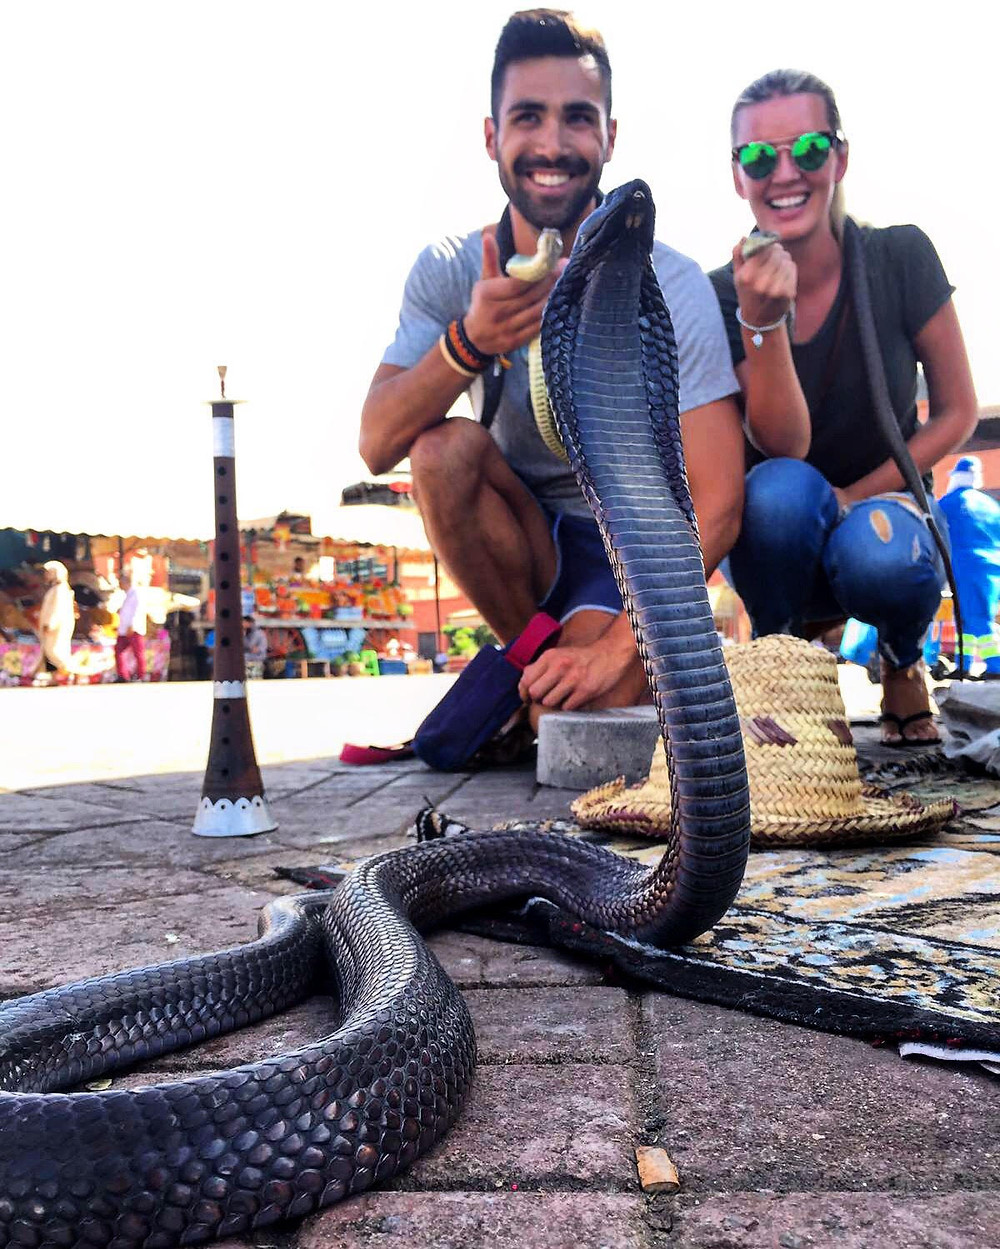 2 people, snakes